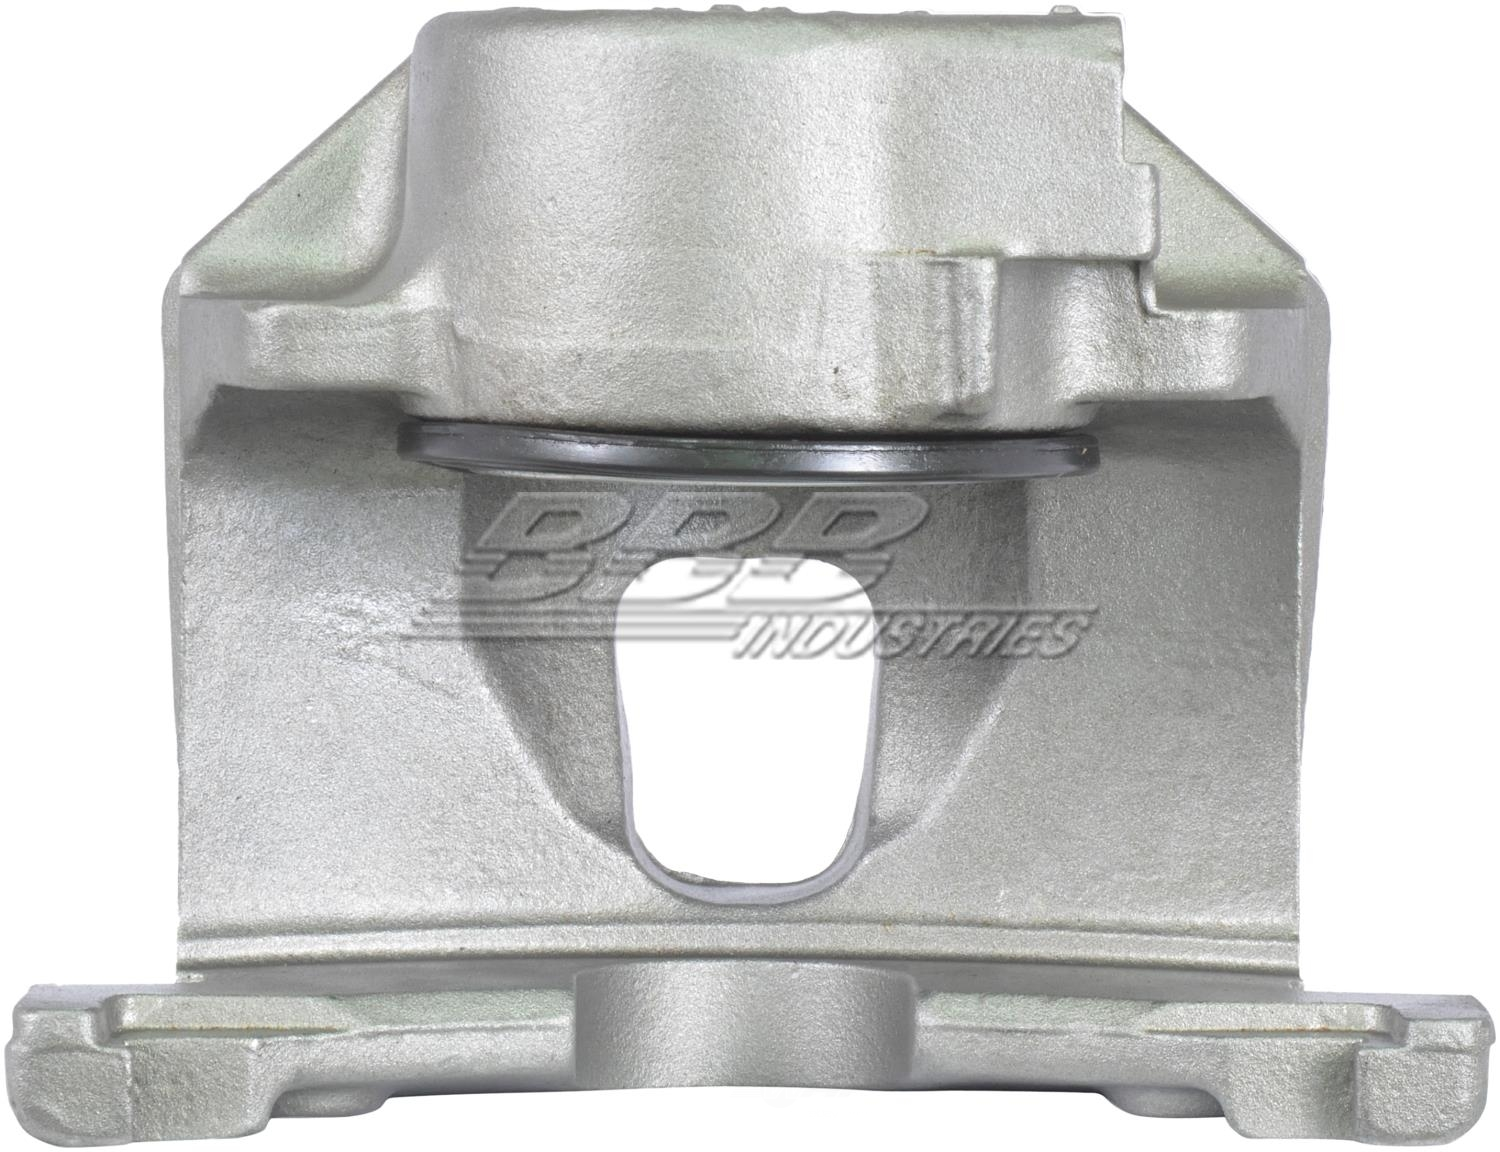 BBB INDUSTRIES - Reman Caliper w/ Installation Hardware - BBA 97-17222B